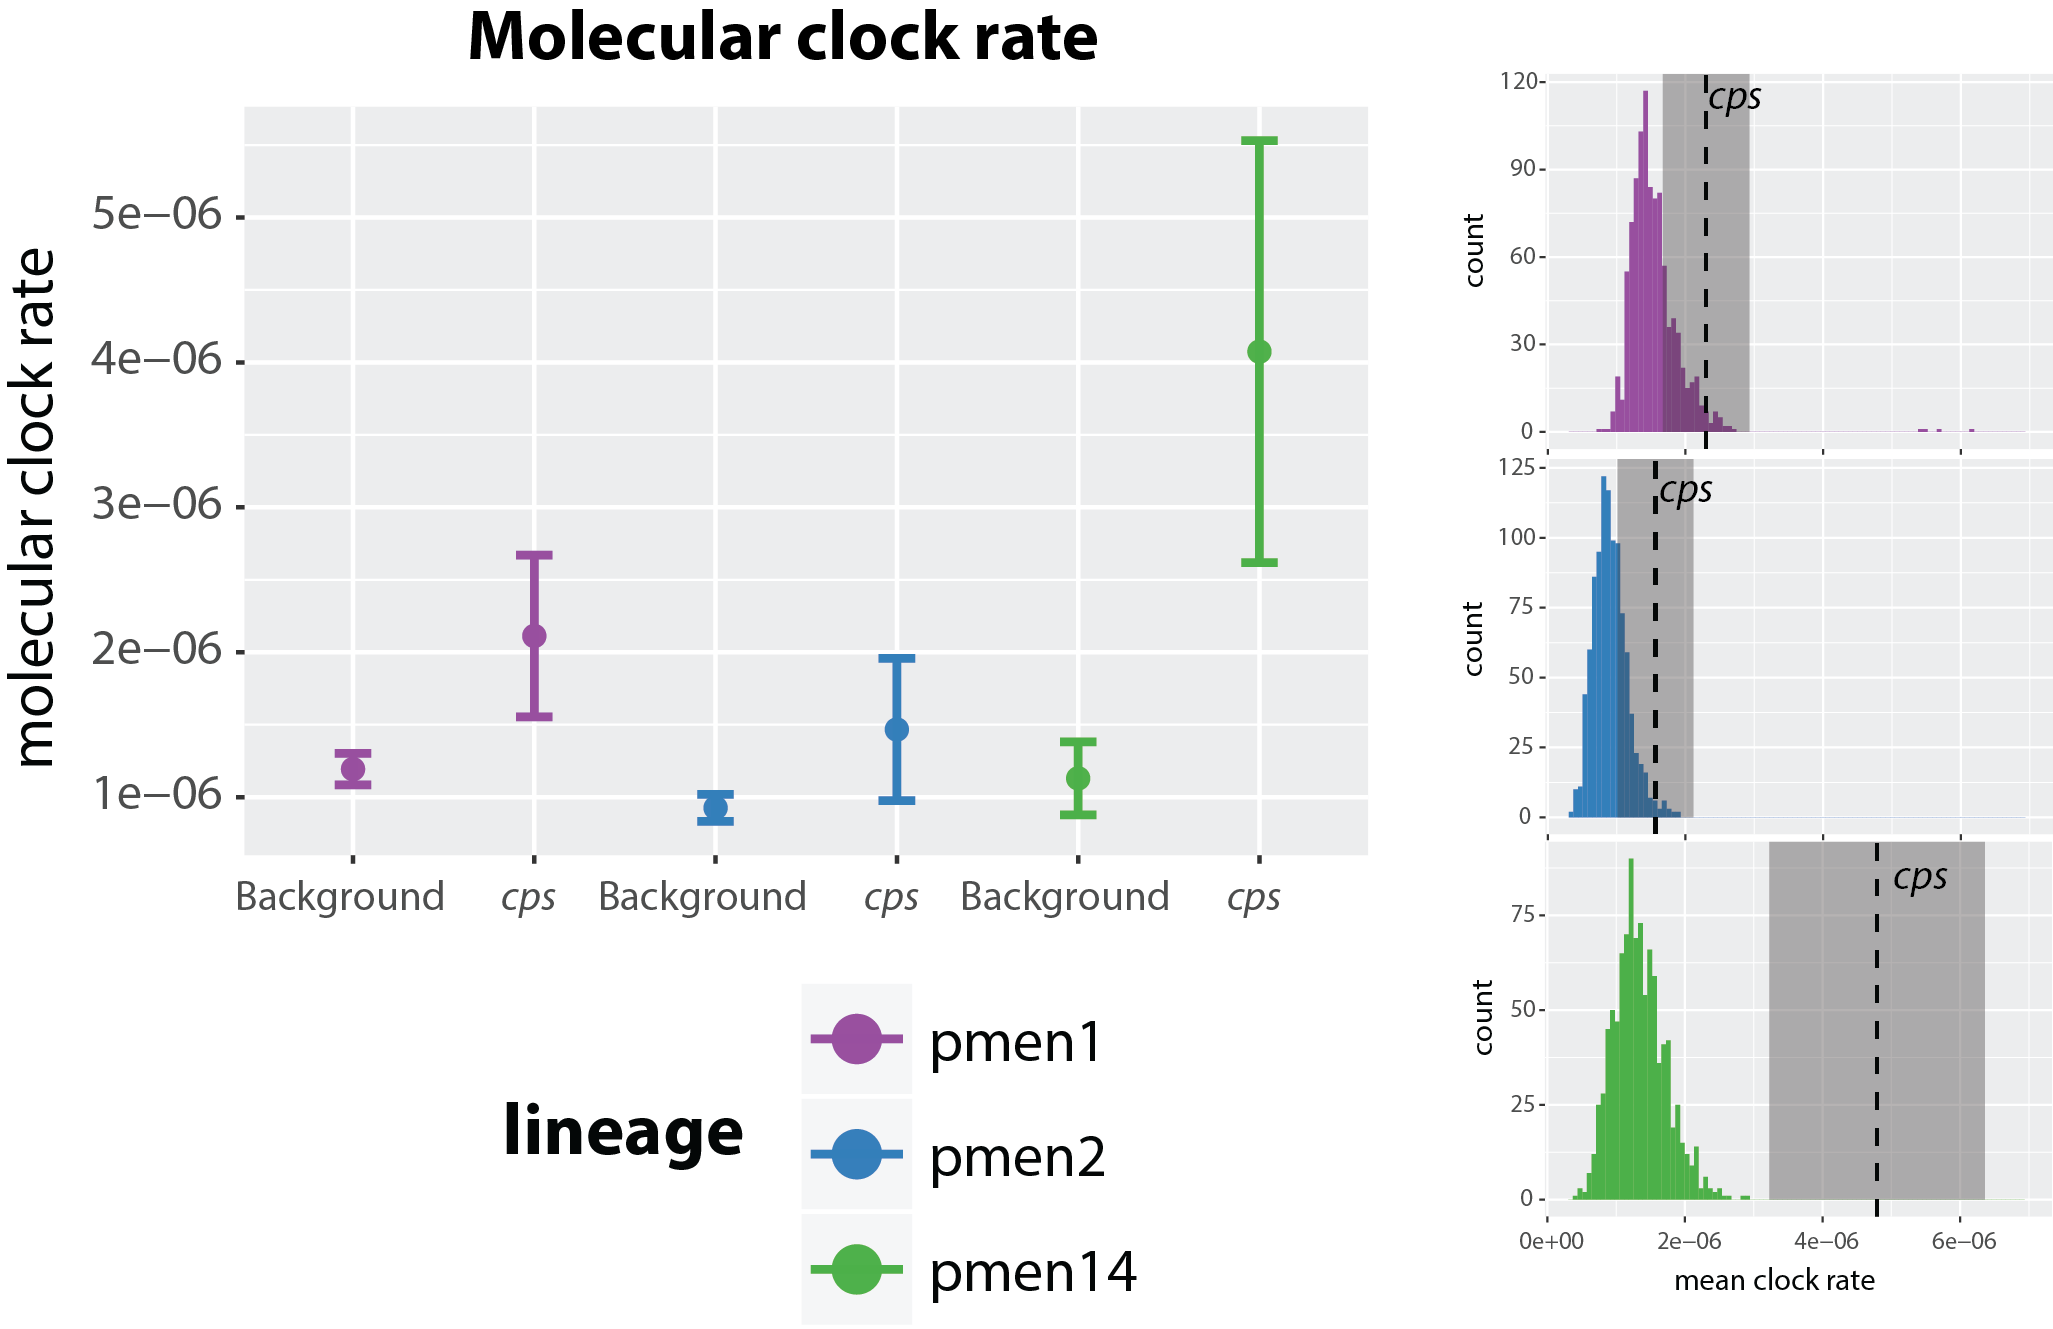 Comparison of the molecular clock rate in three pneumococcal lineages: PMEN1, PMEN2 and PMEN14. (From [1].)